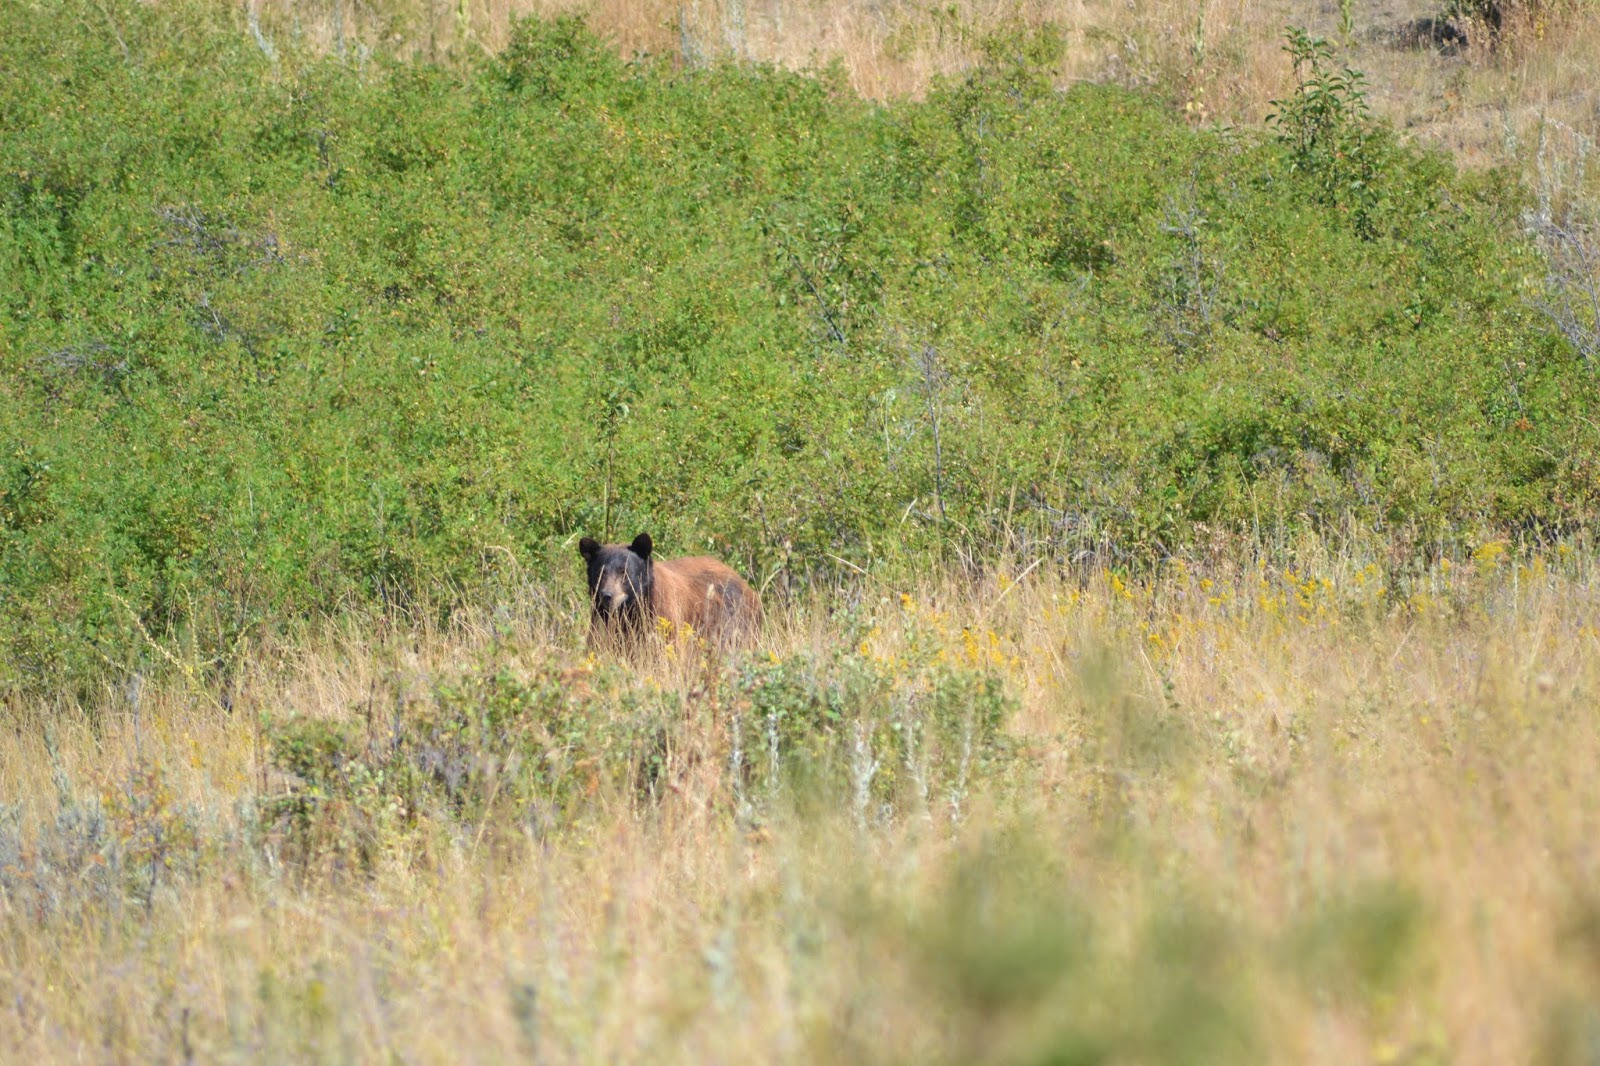 Black bear, national Bison range, Montana